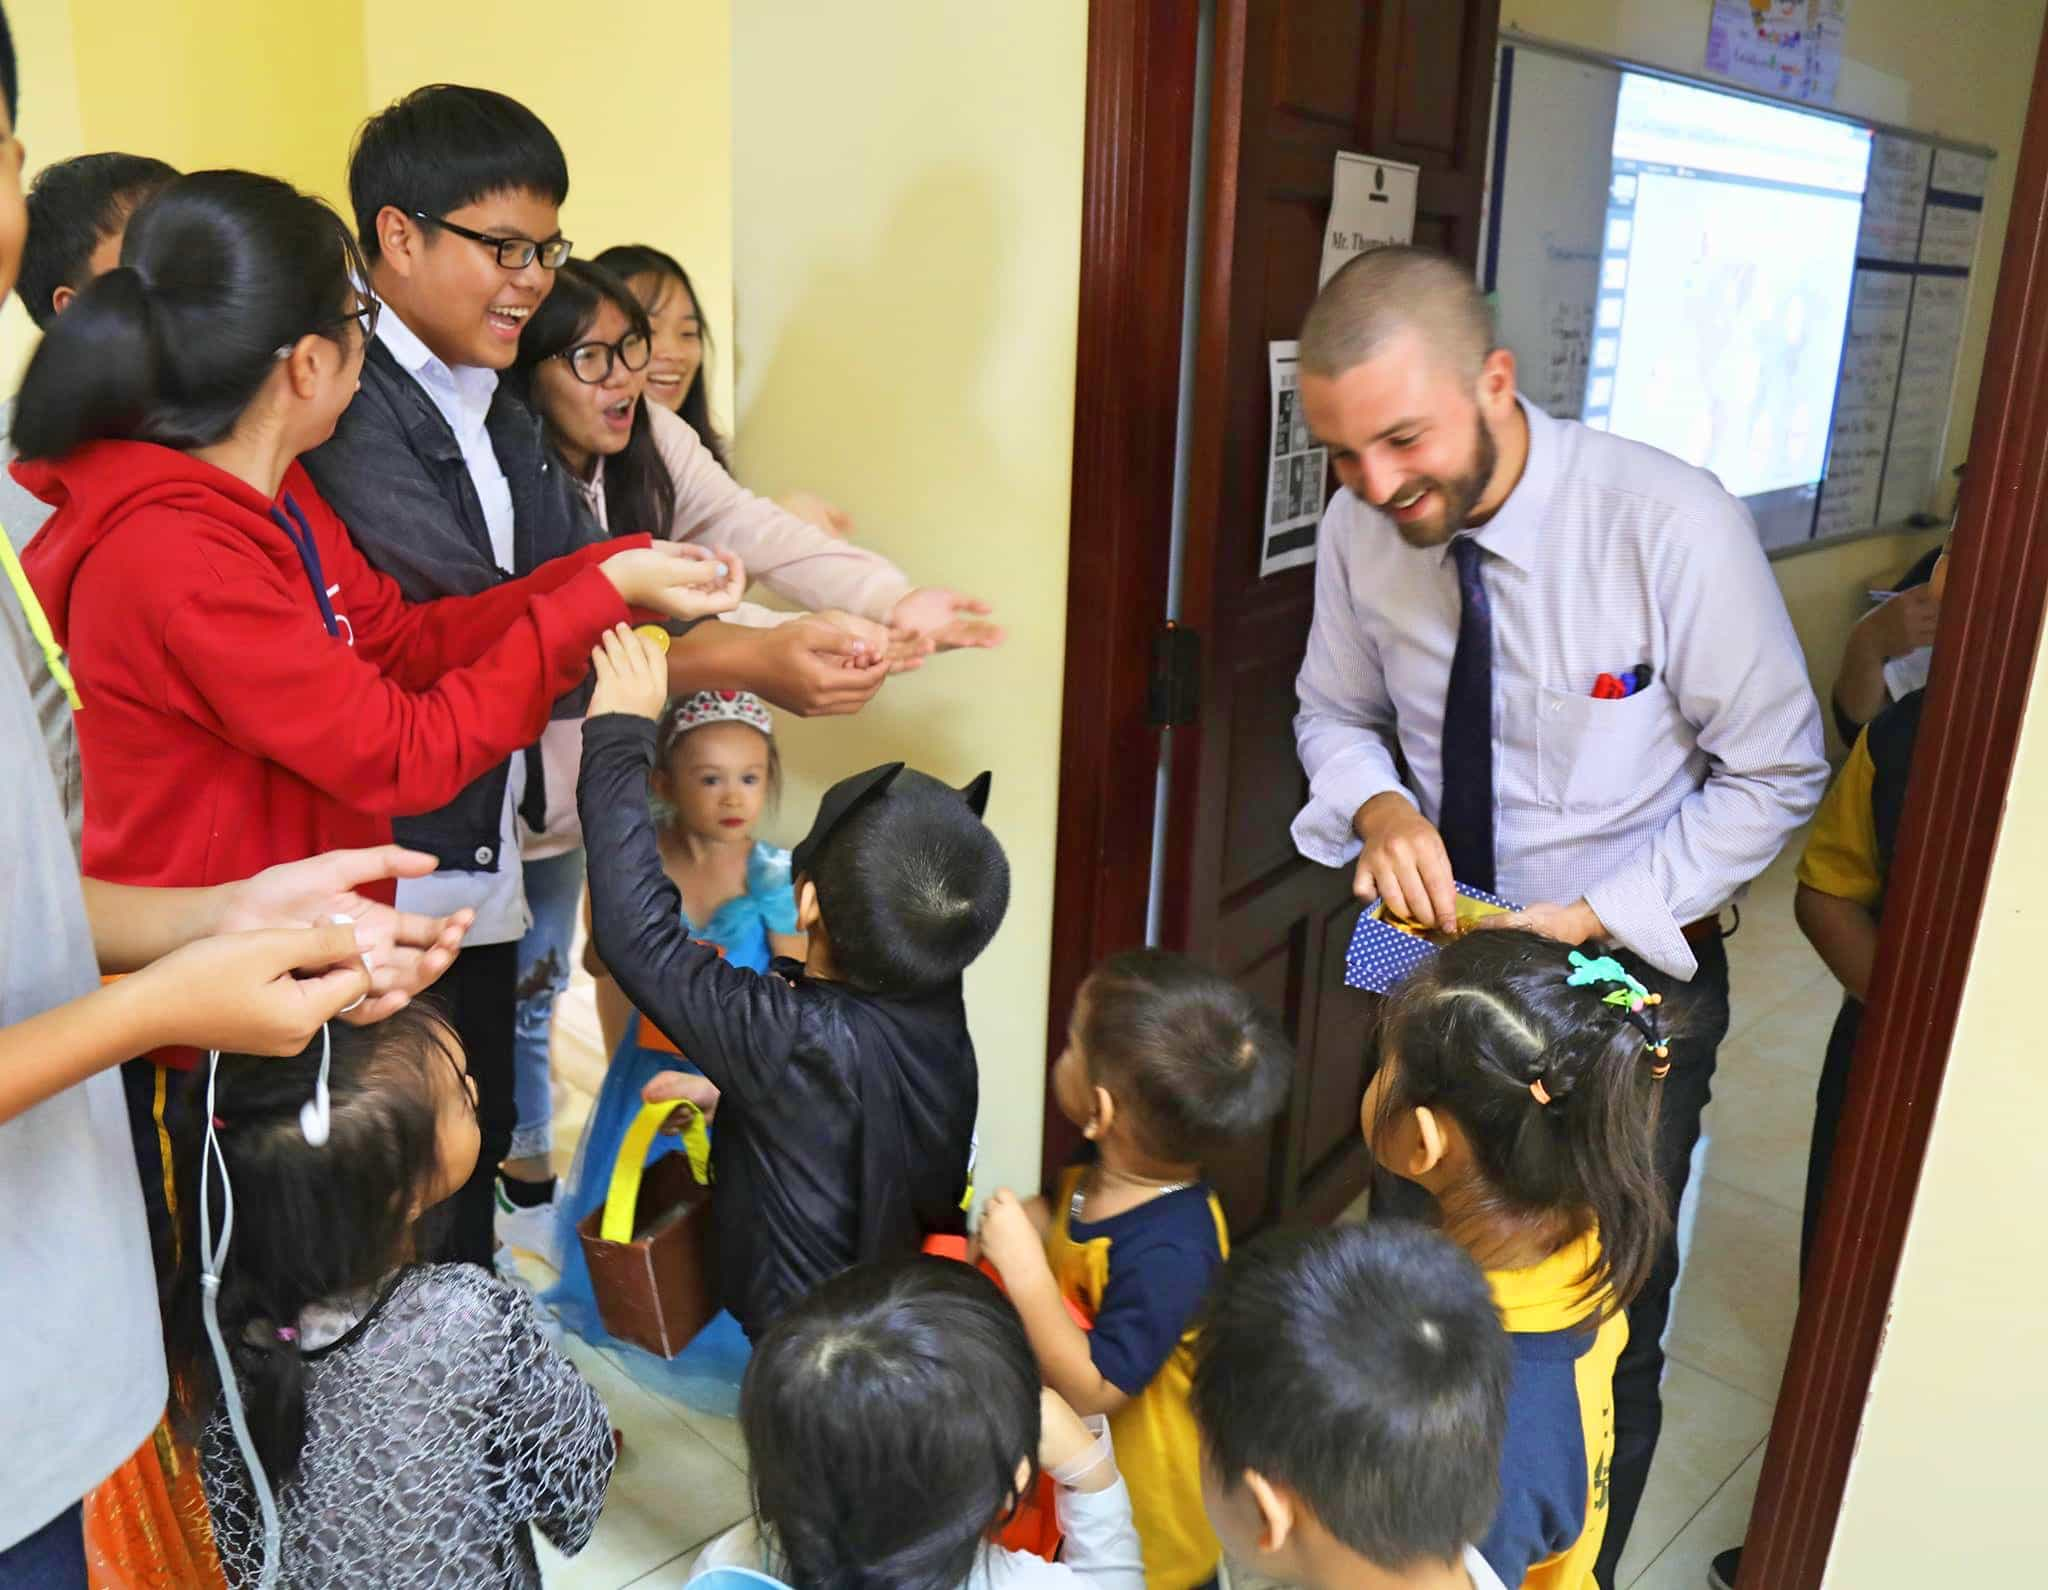 Handing out candy for Halloween while working at APU International School Da Nang, Vietnam